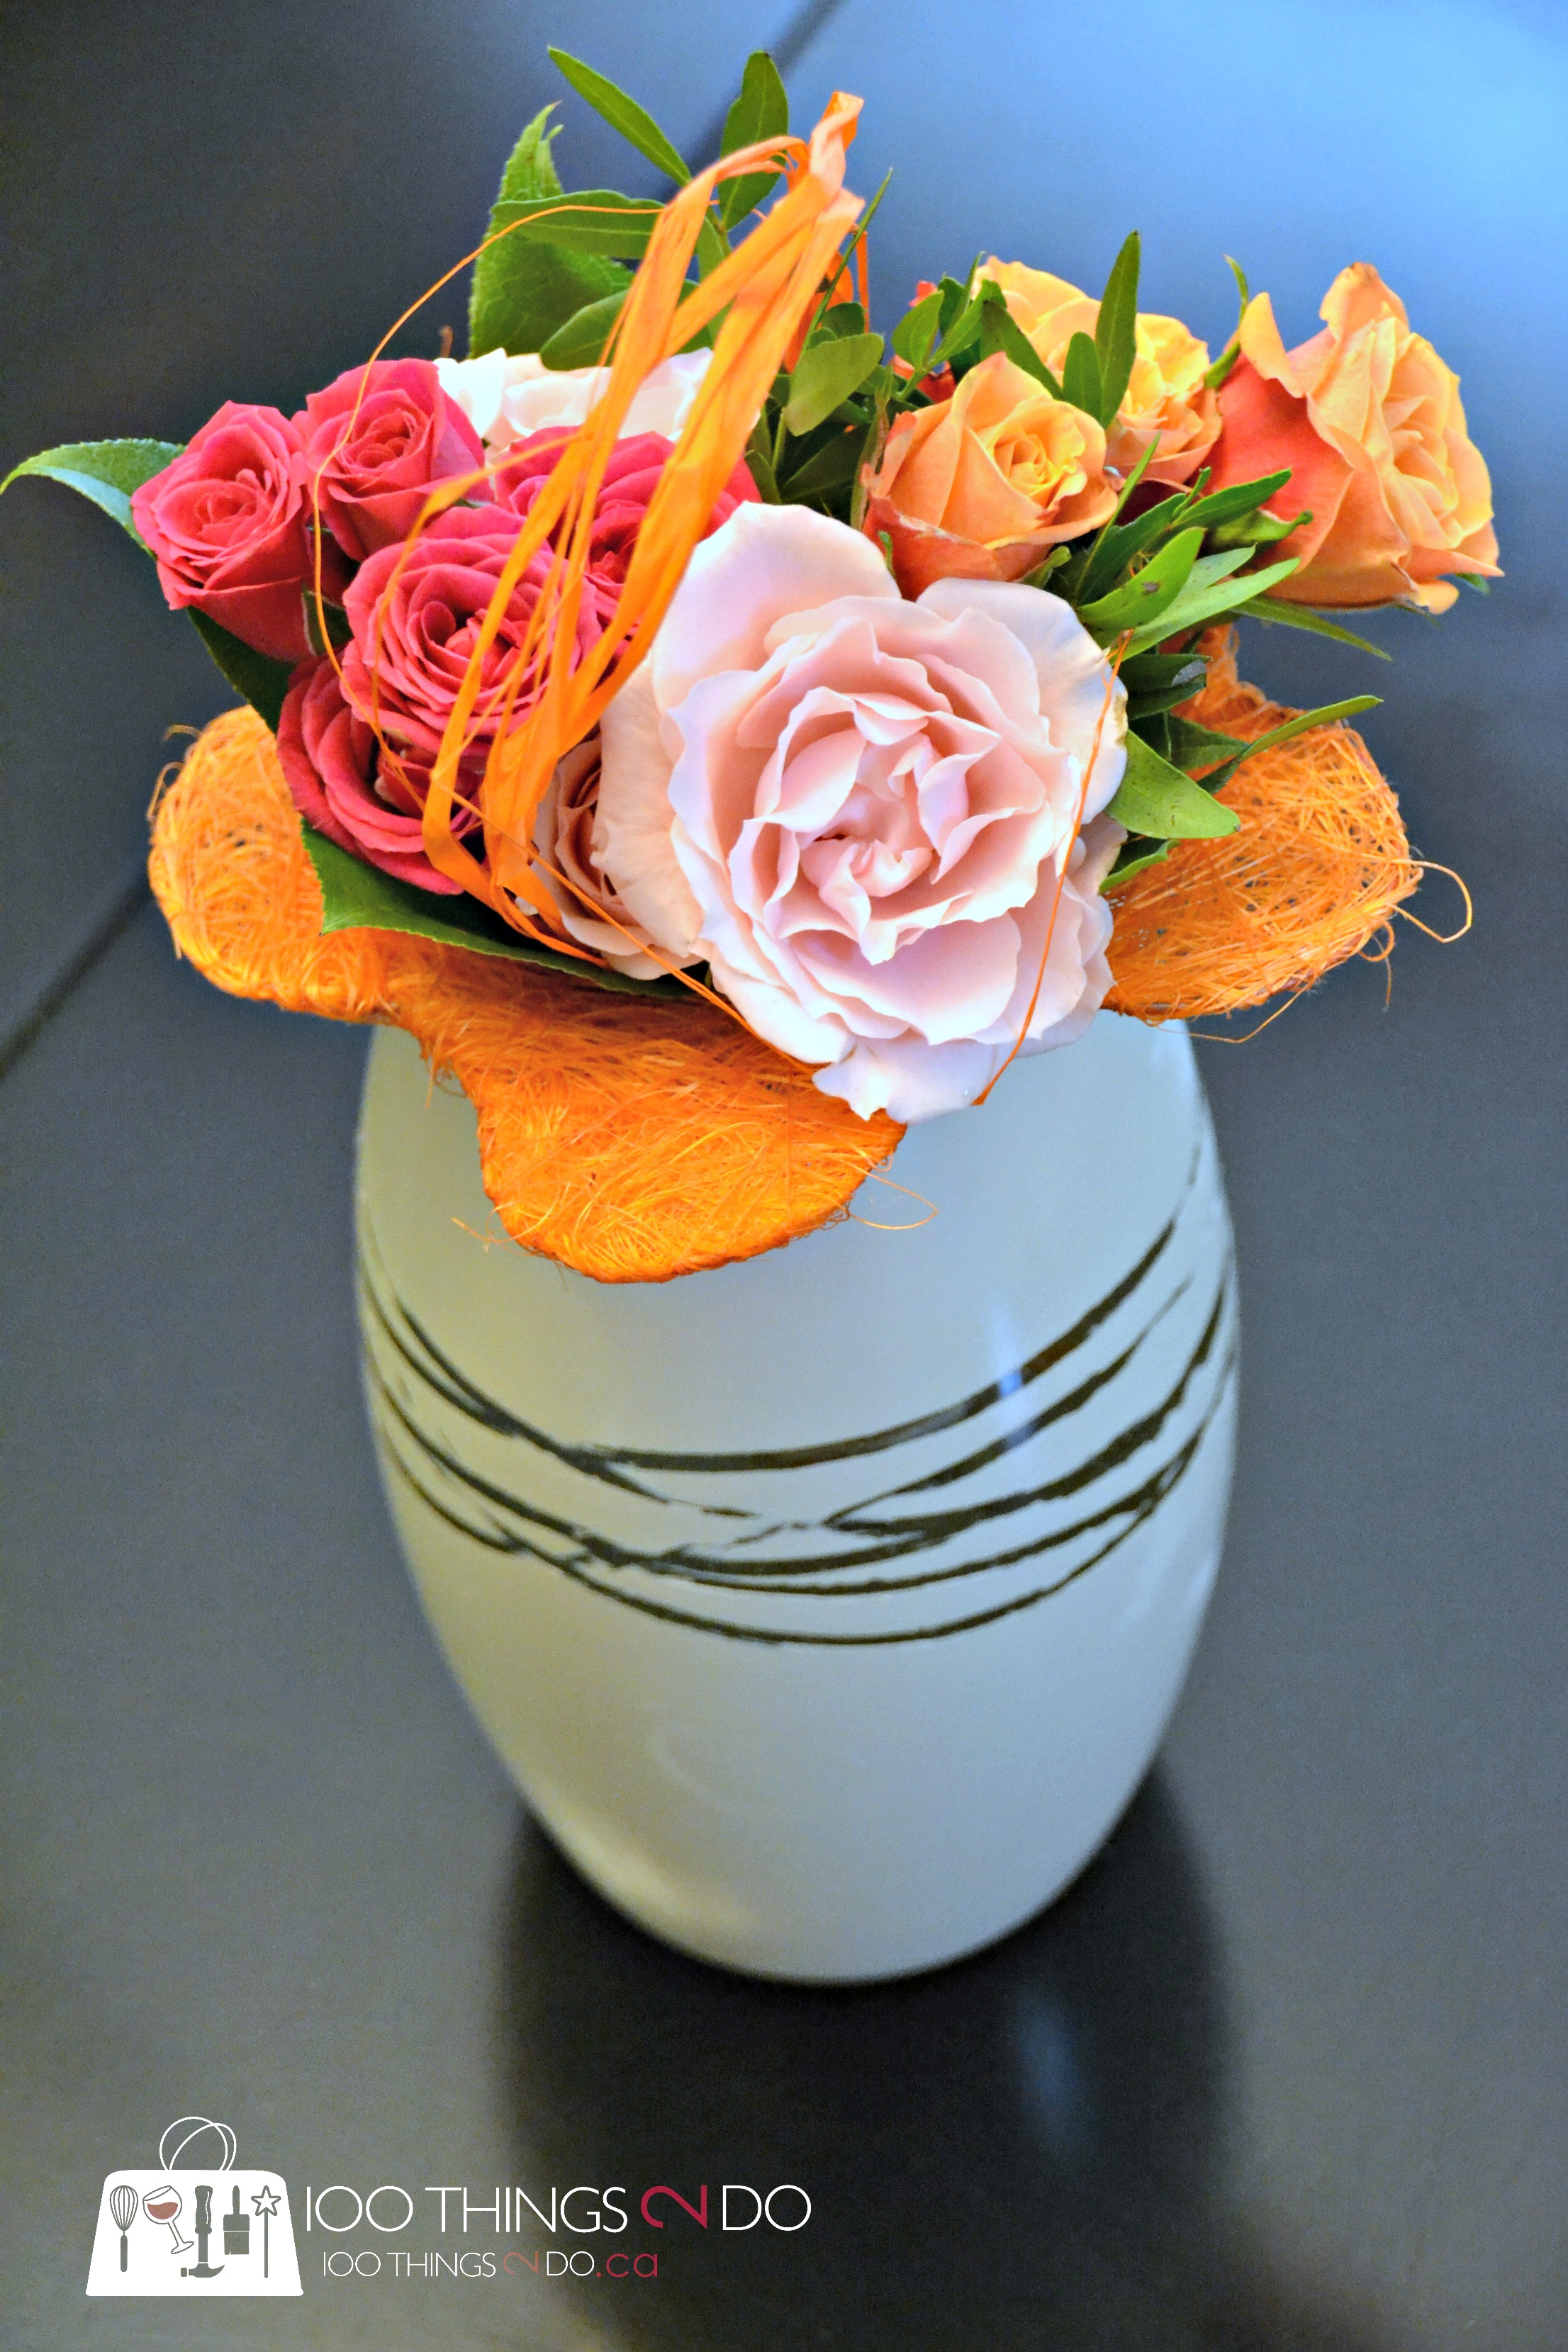 Vase with small bouquet